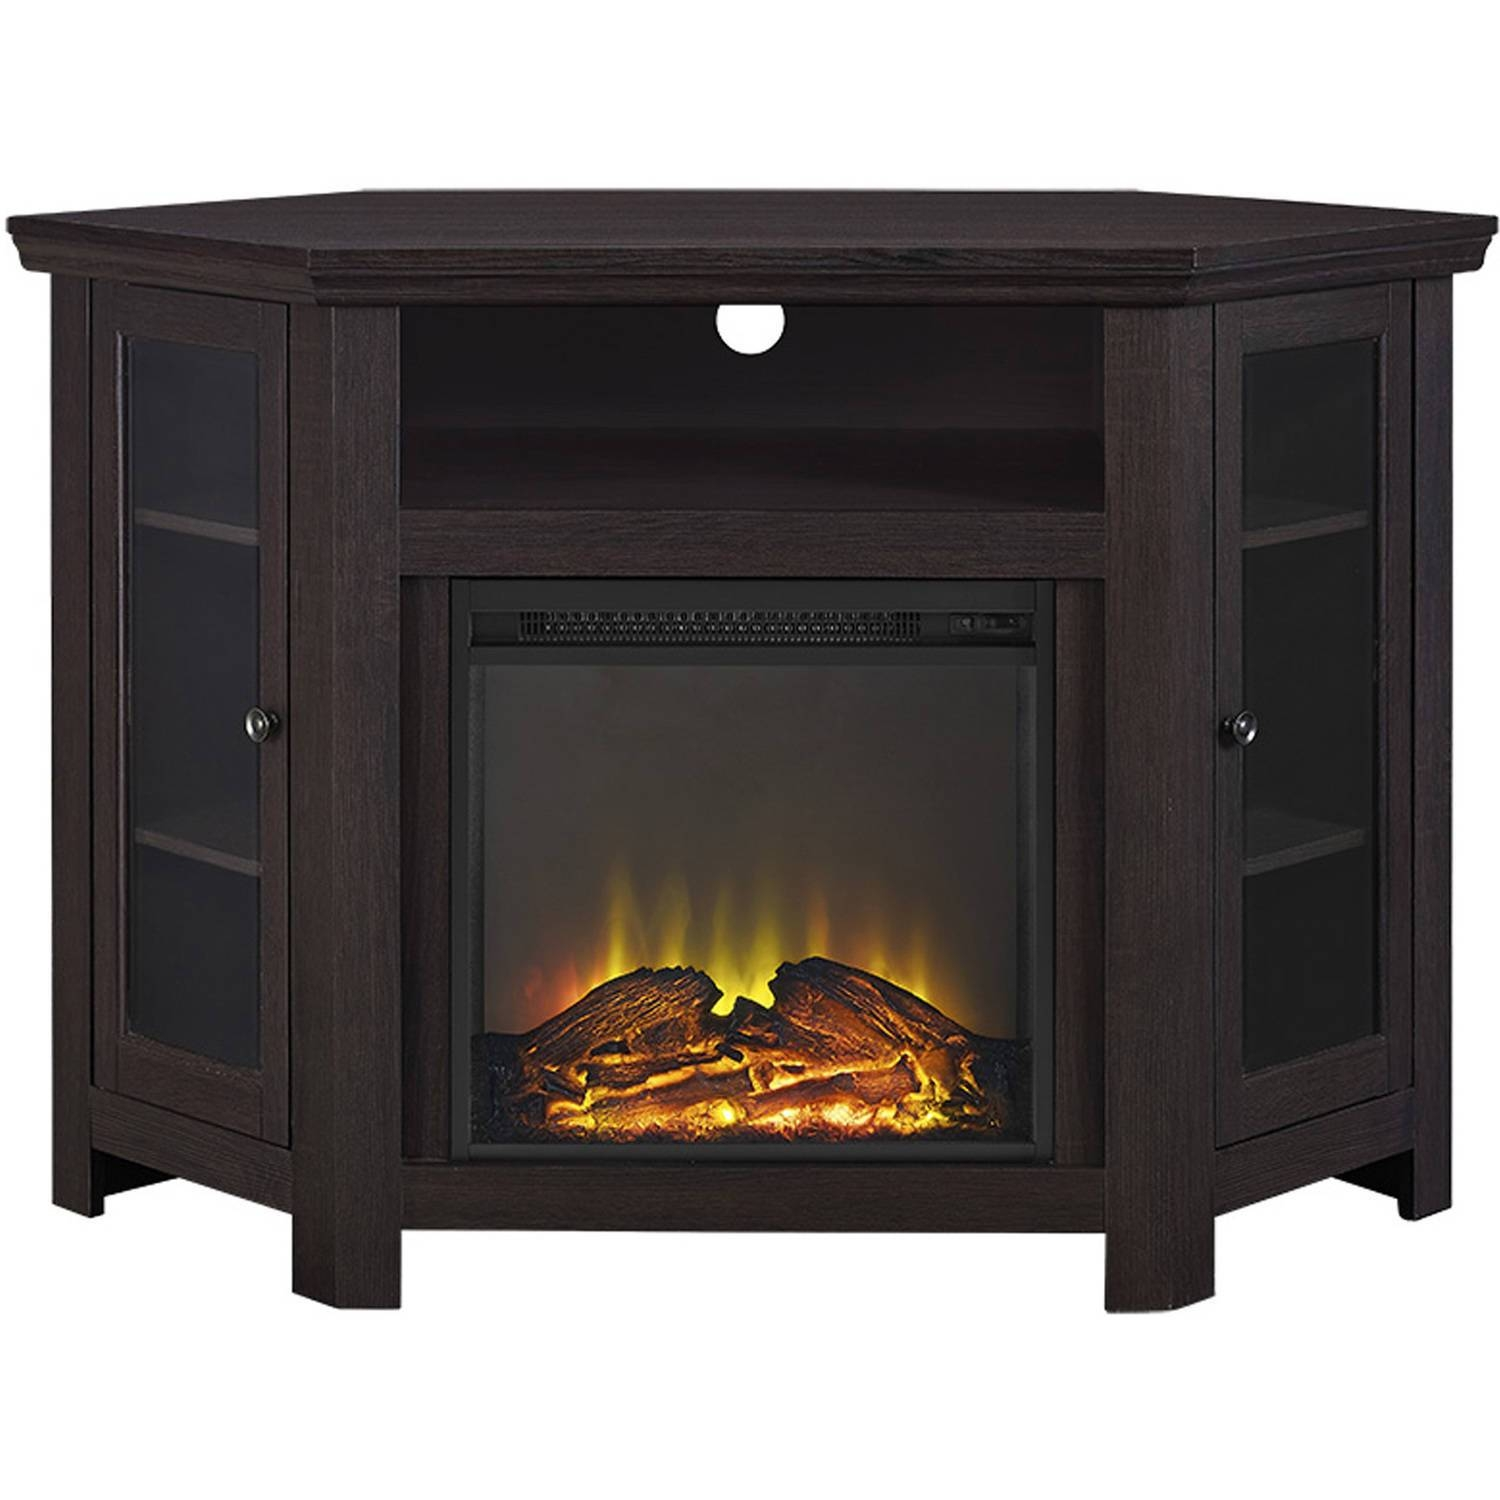 "Wood Corner Tv Fireplace Tv Stand For Tvs Up To 52"", Multiple within Large Corner Tv Stands (Image 14 of 15)"